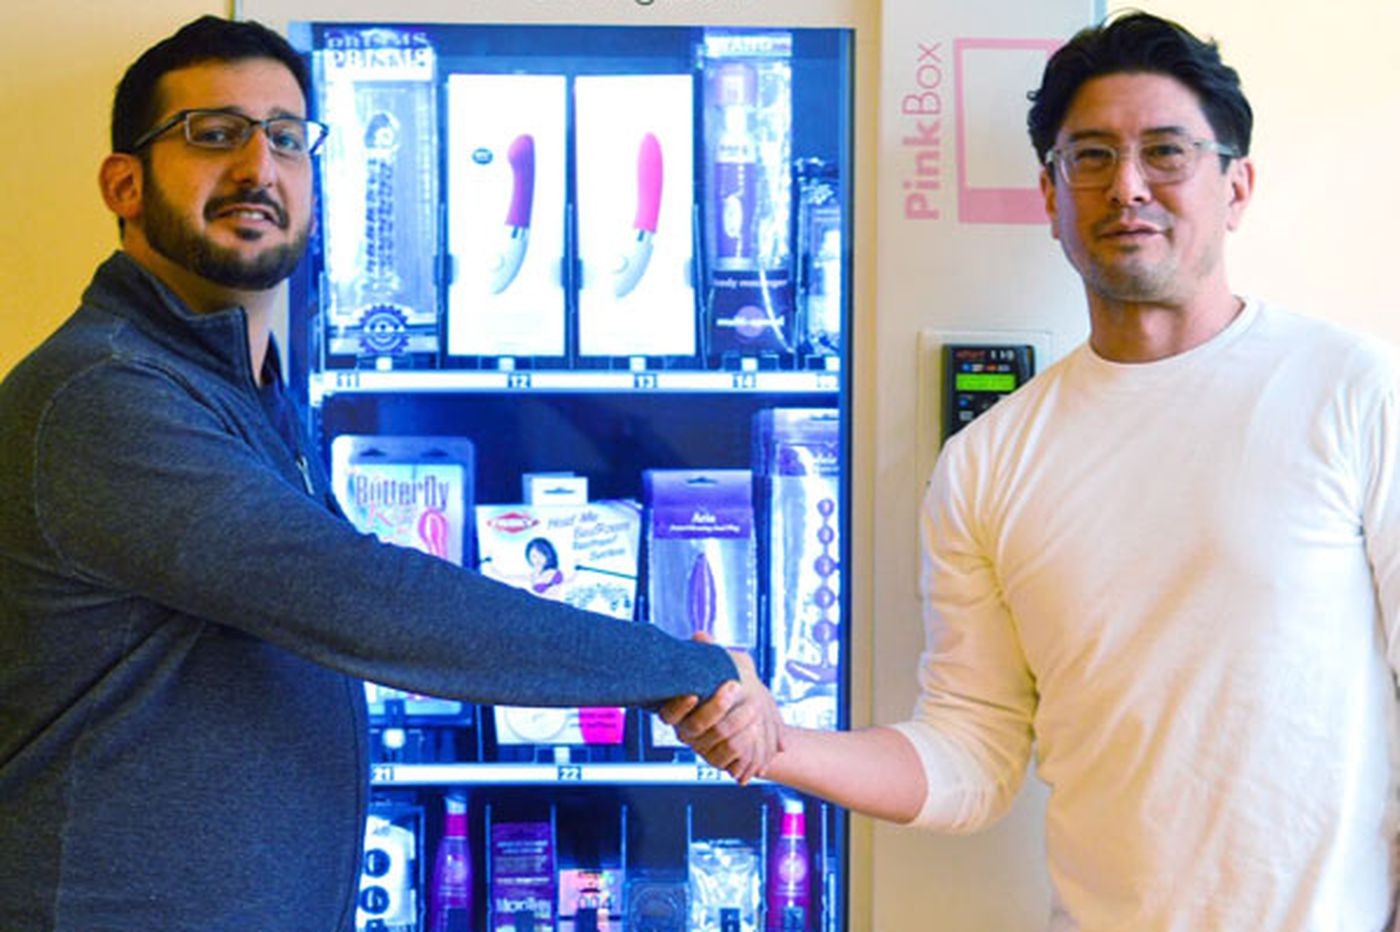 Sex-toy vending machine sells pleasure for a penny